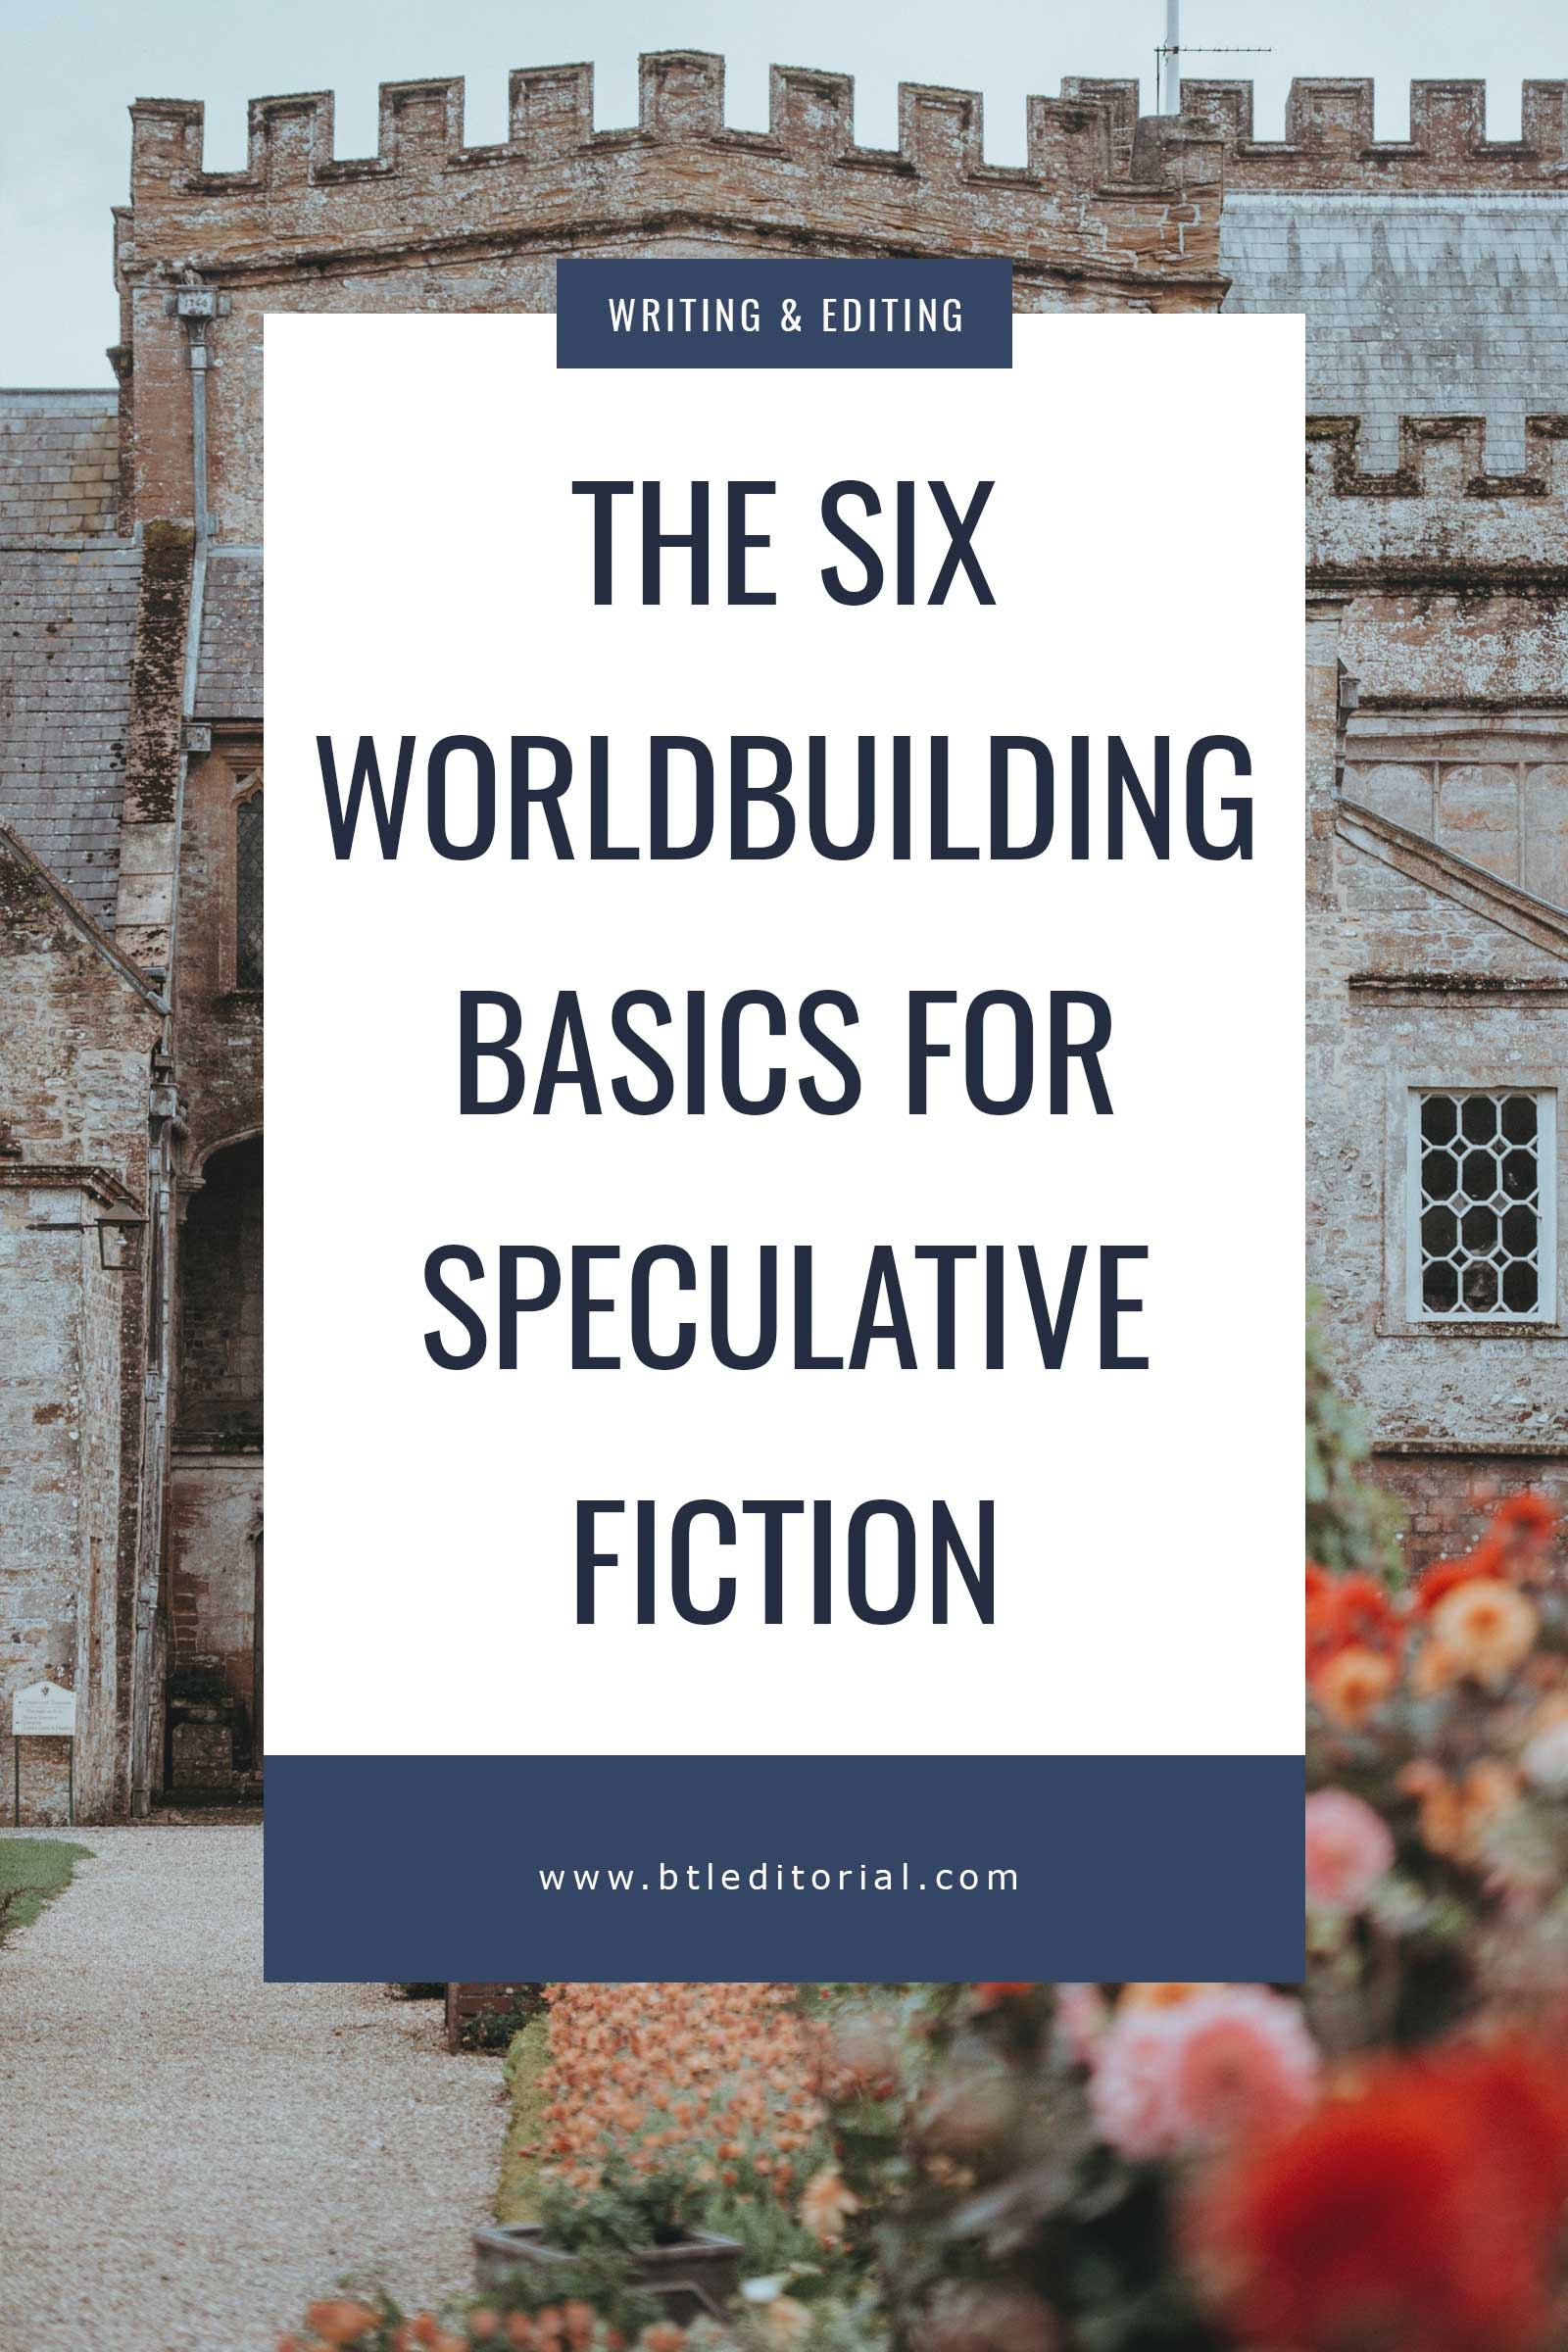 Six Worldbuilding Basics for Speculative Fiction | Between the Lines Editorial